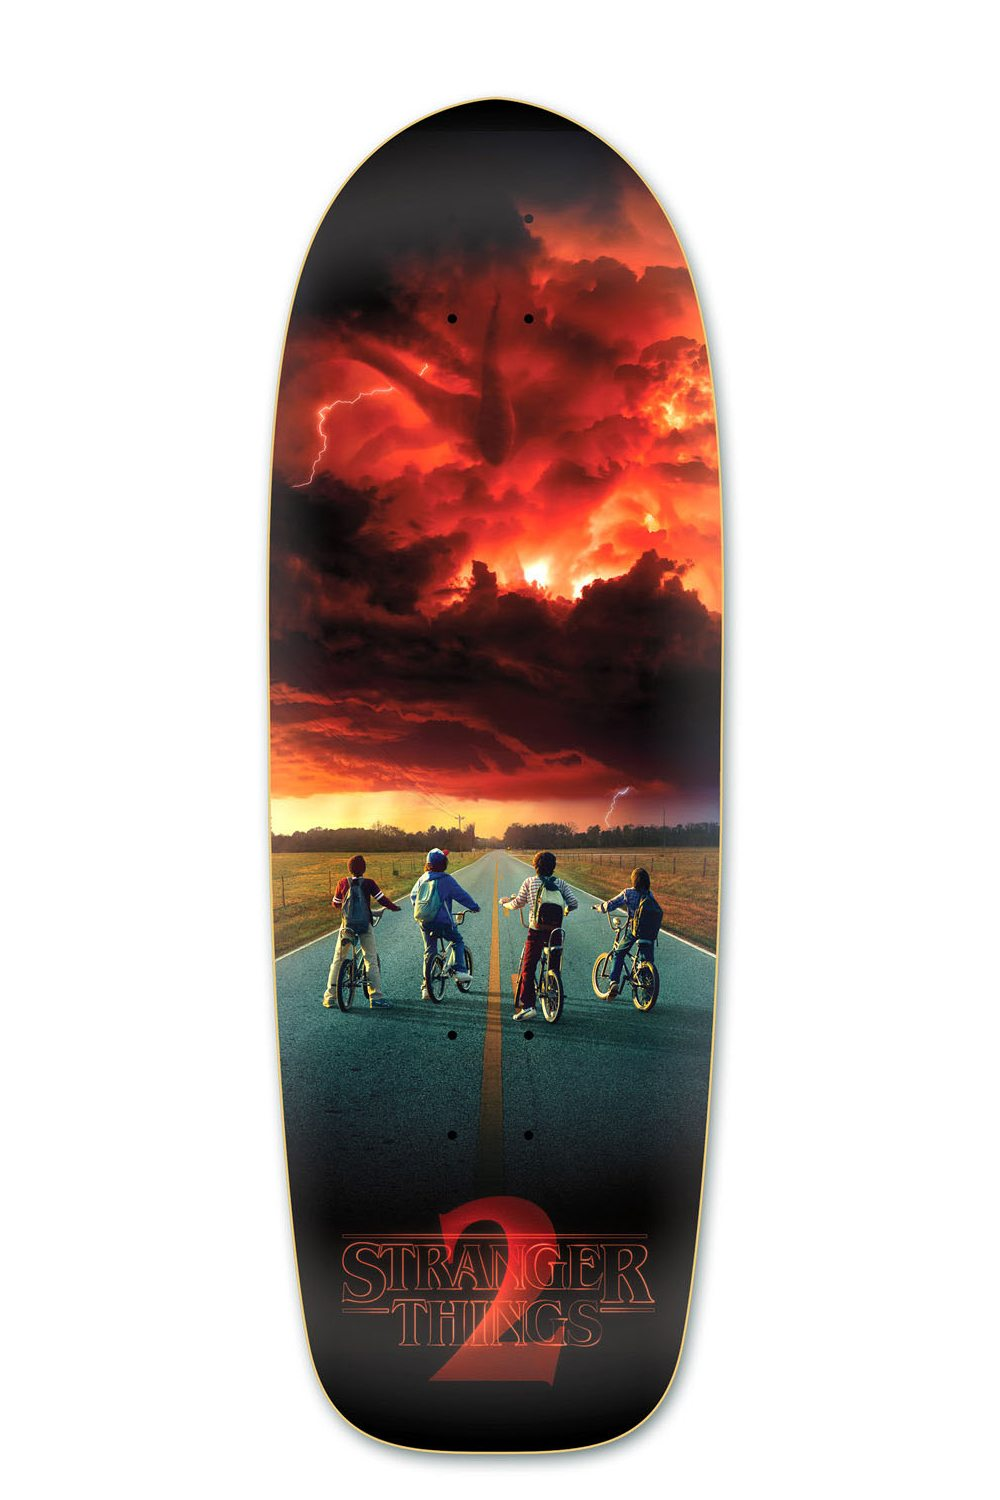 New Stranger Things Season 2 Merchandise On The Way As